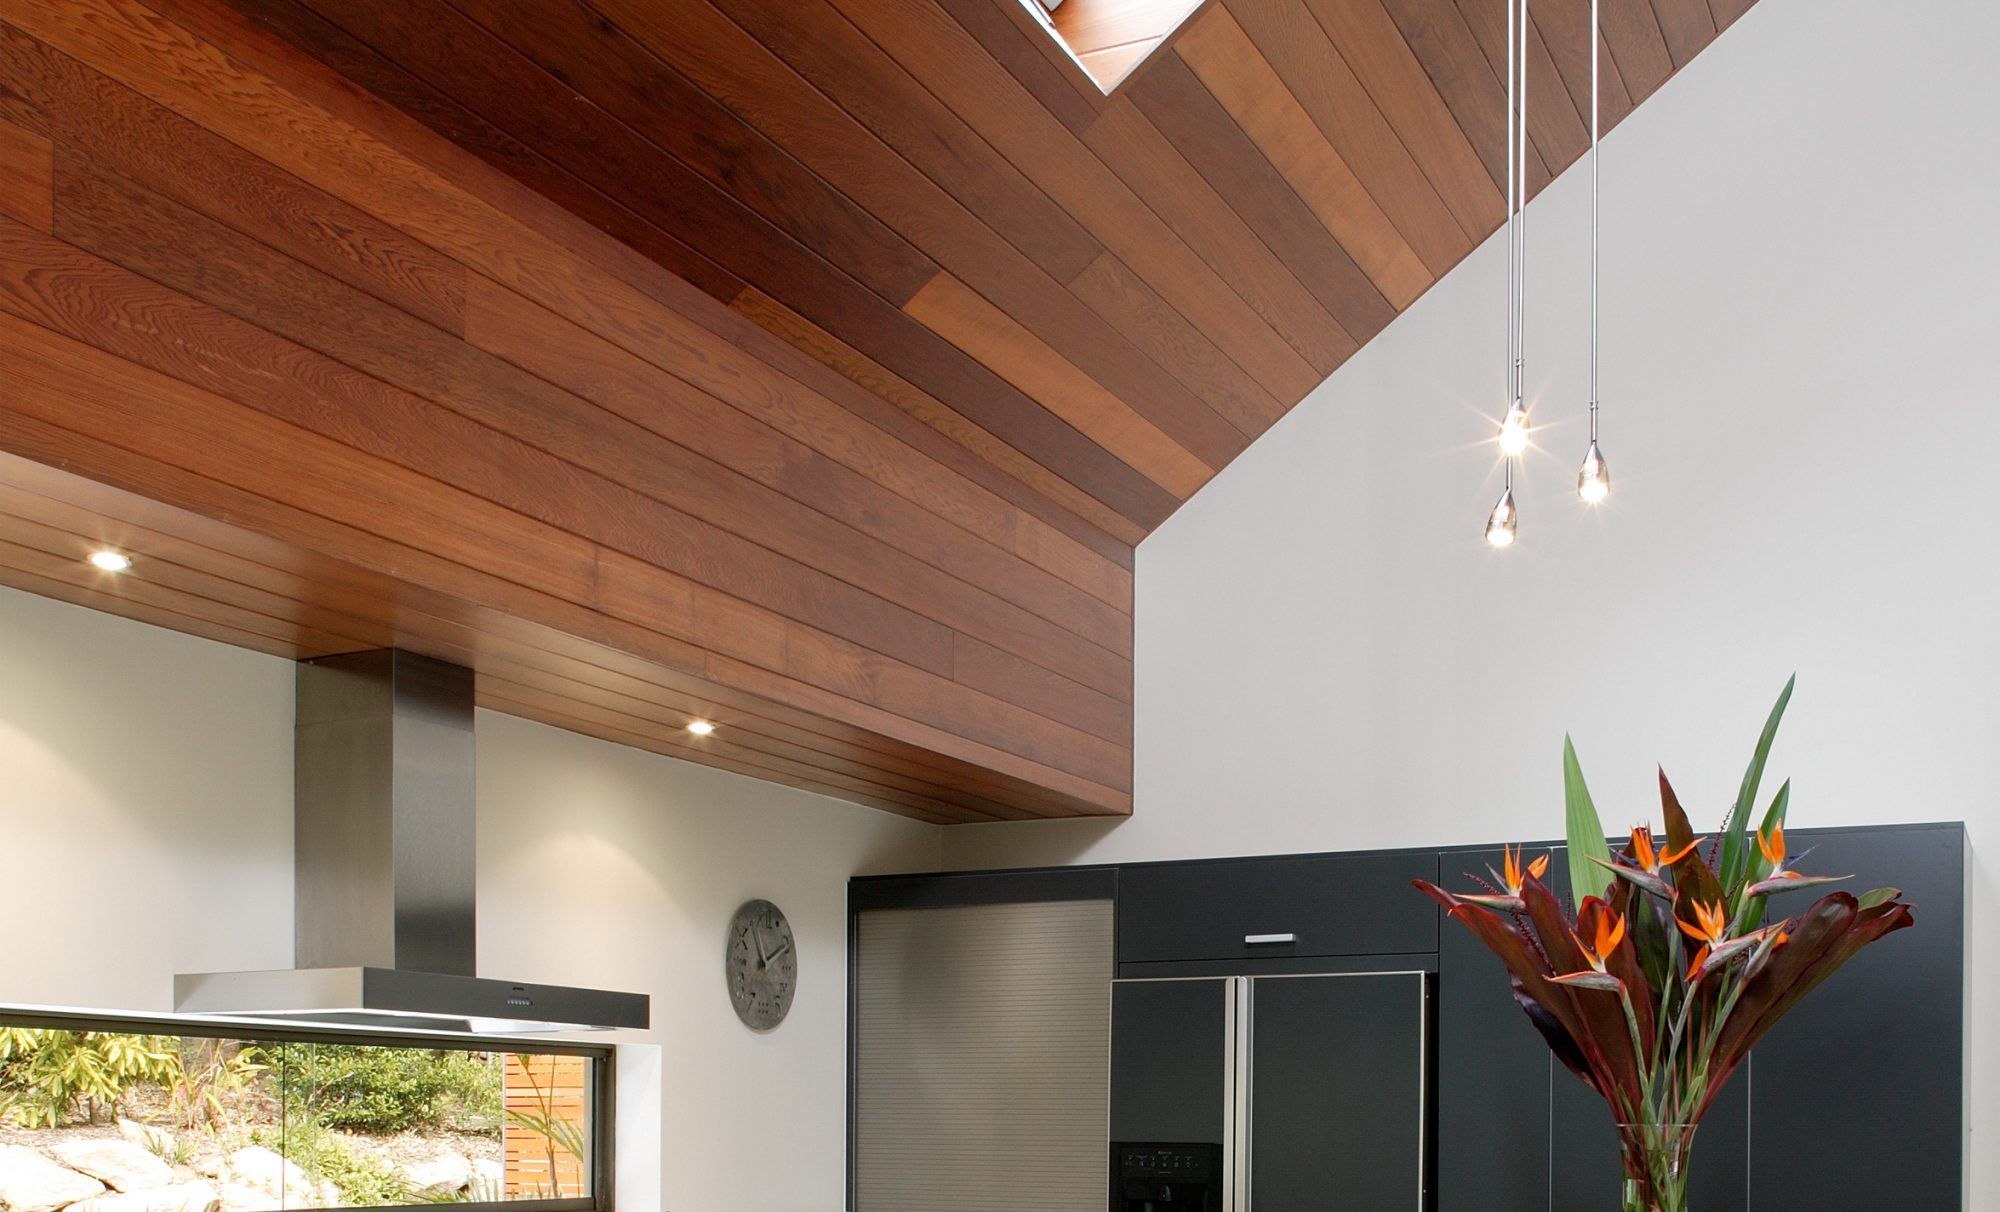 Refresh timber interiors with Sikkens colourless coatings or explore Sikkens various timber stains